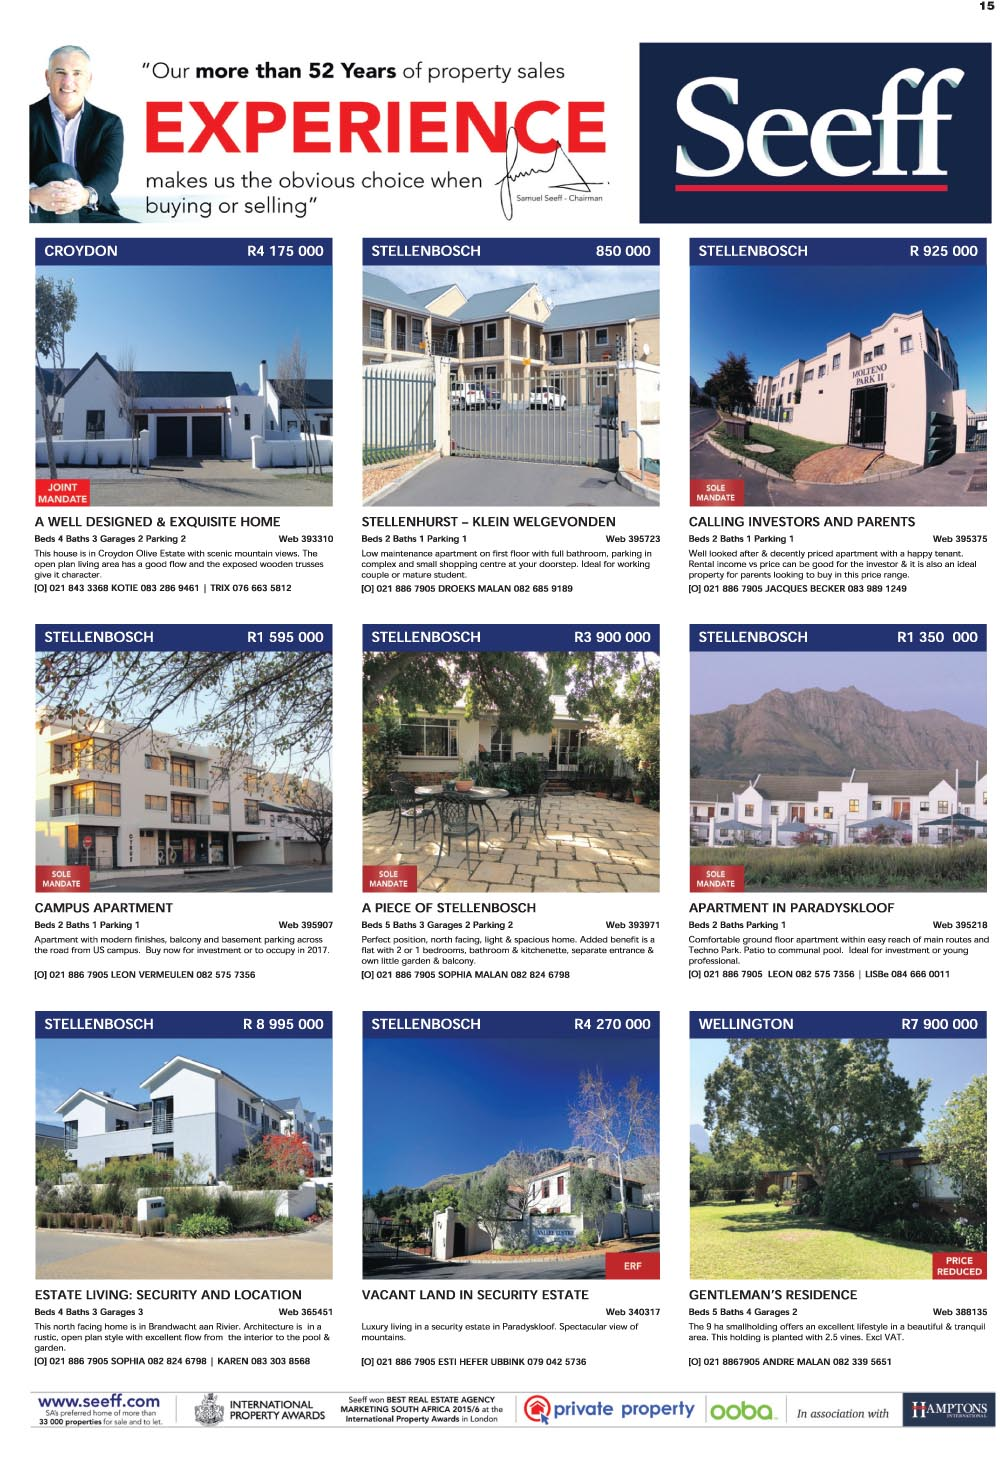 You are browsing images from the article: Property Selection 13th July 2016